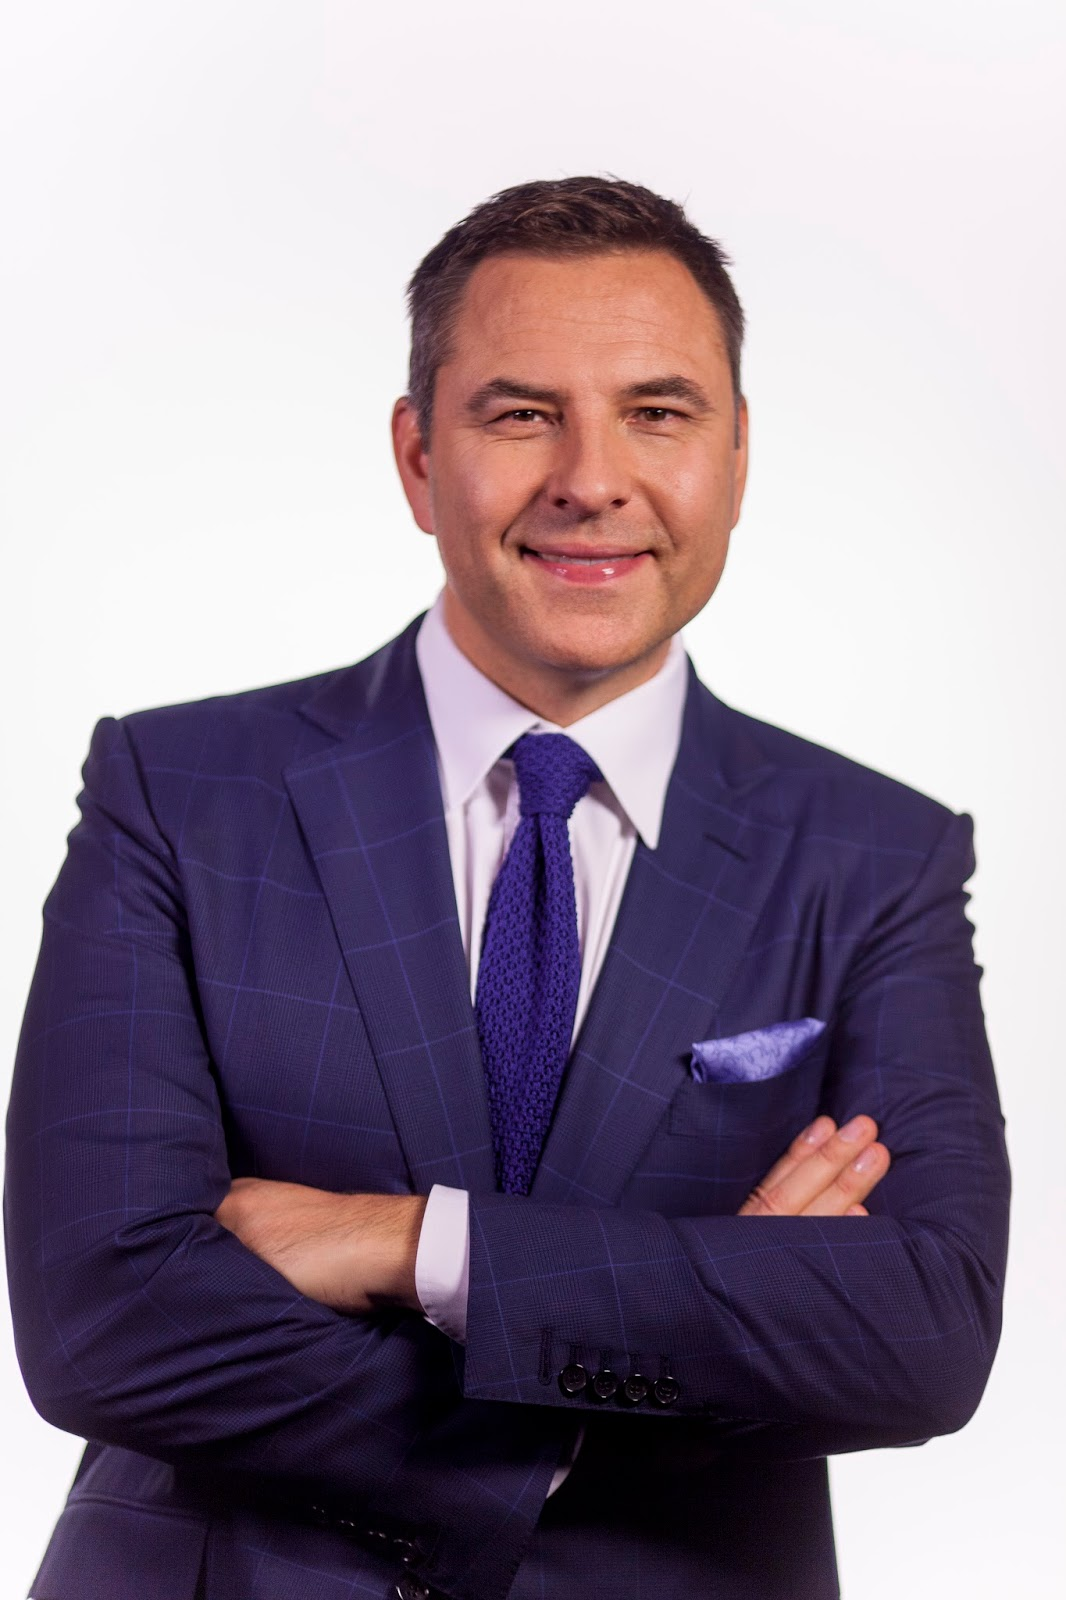 David Walliams head and shoulder photo